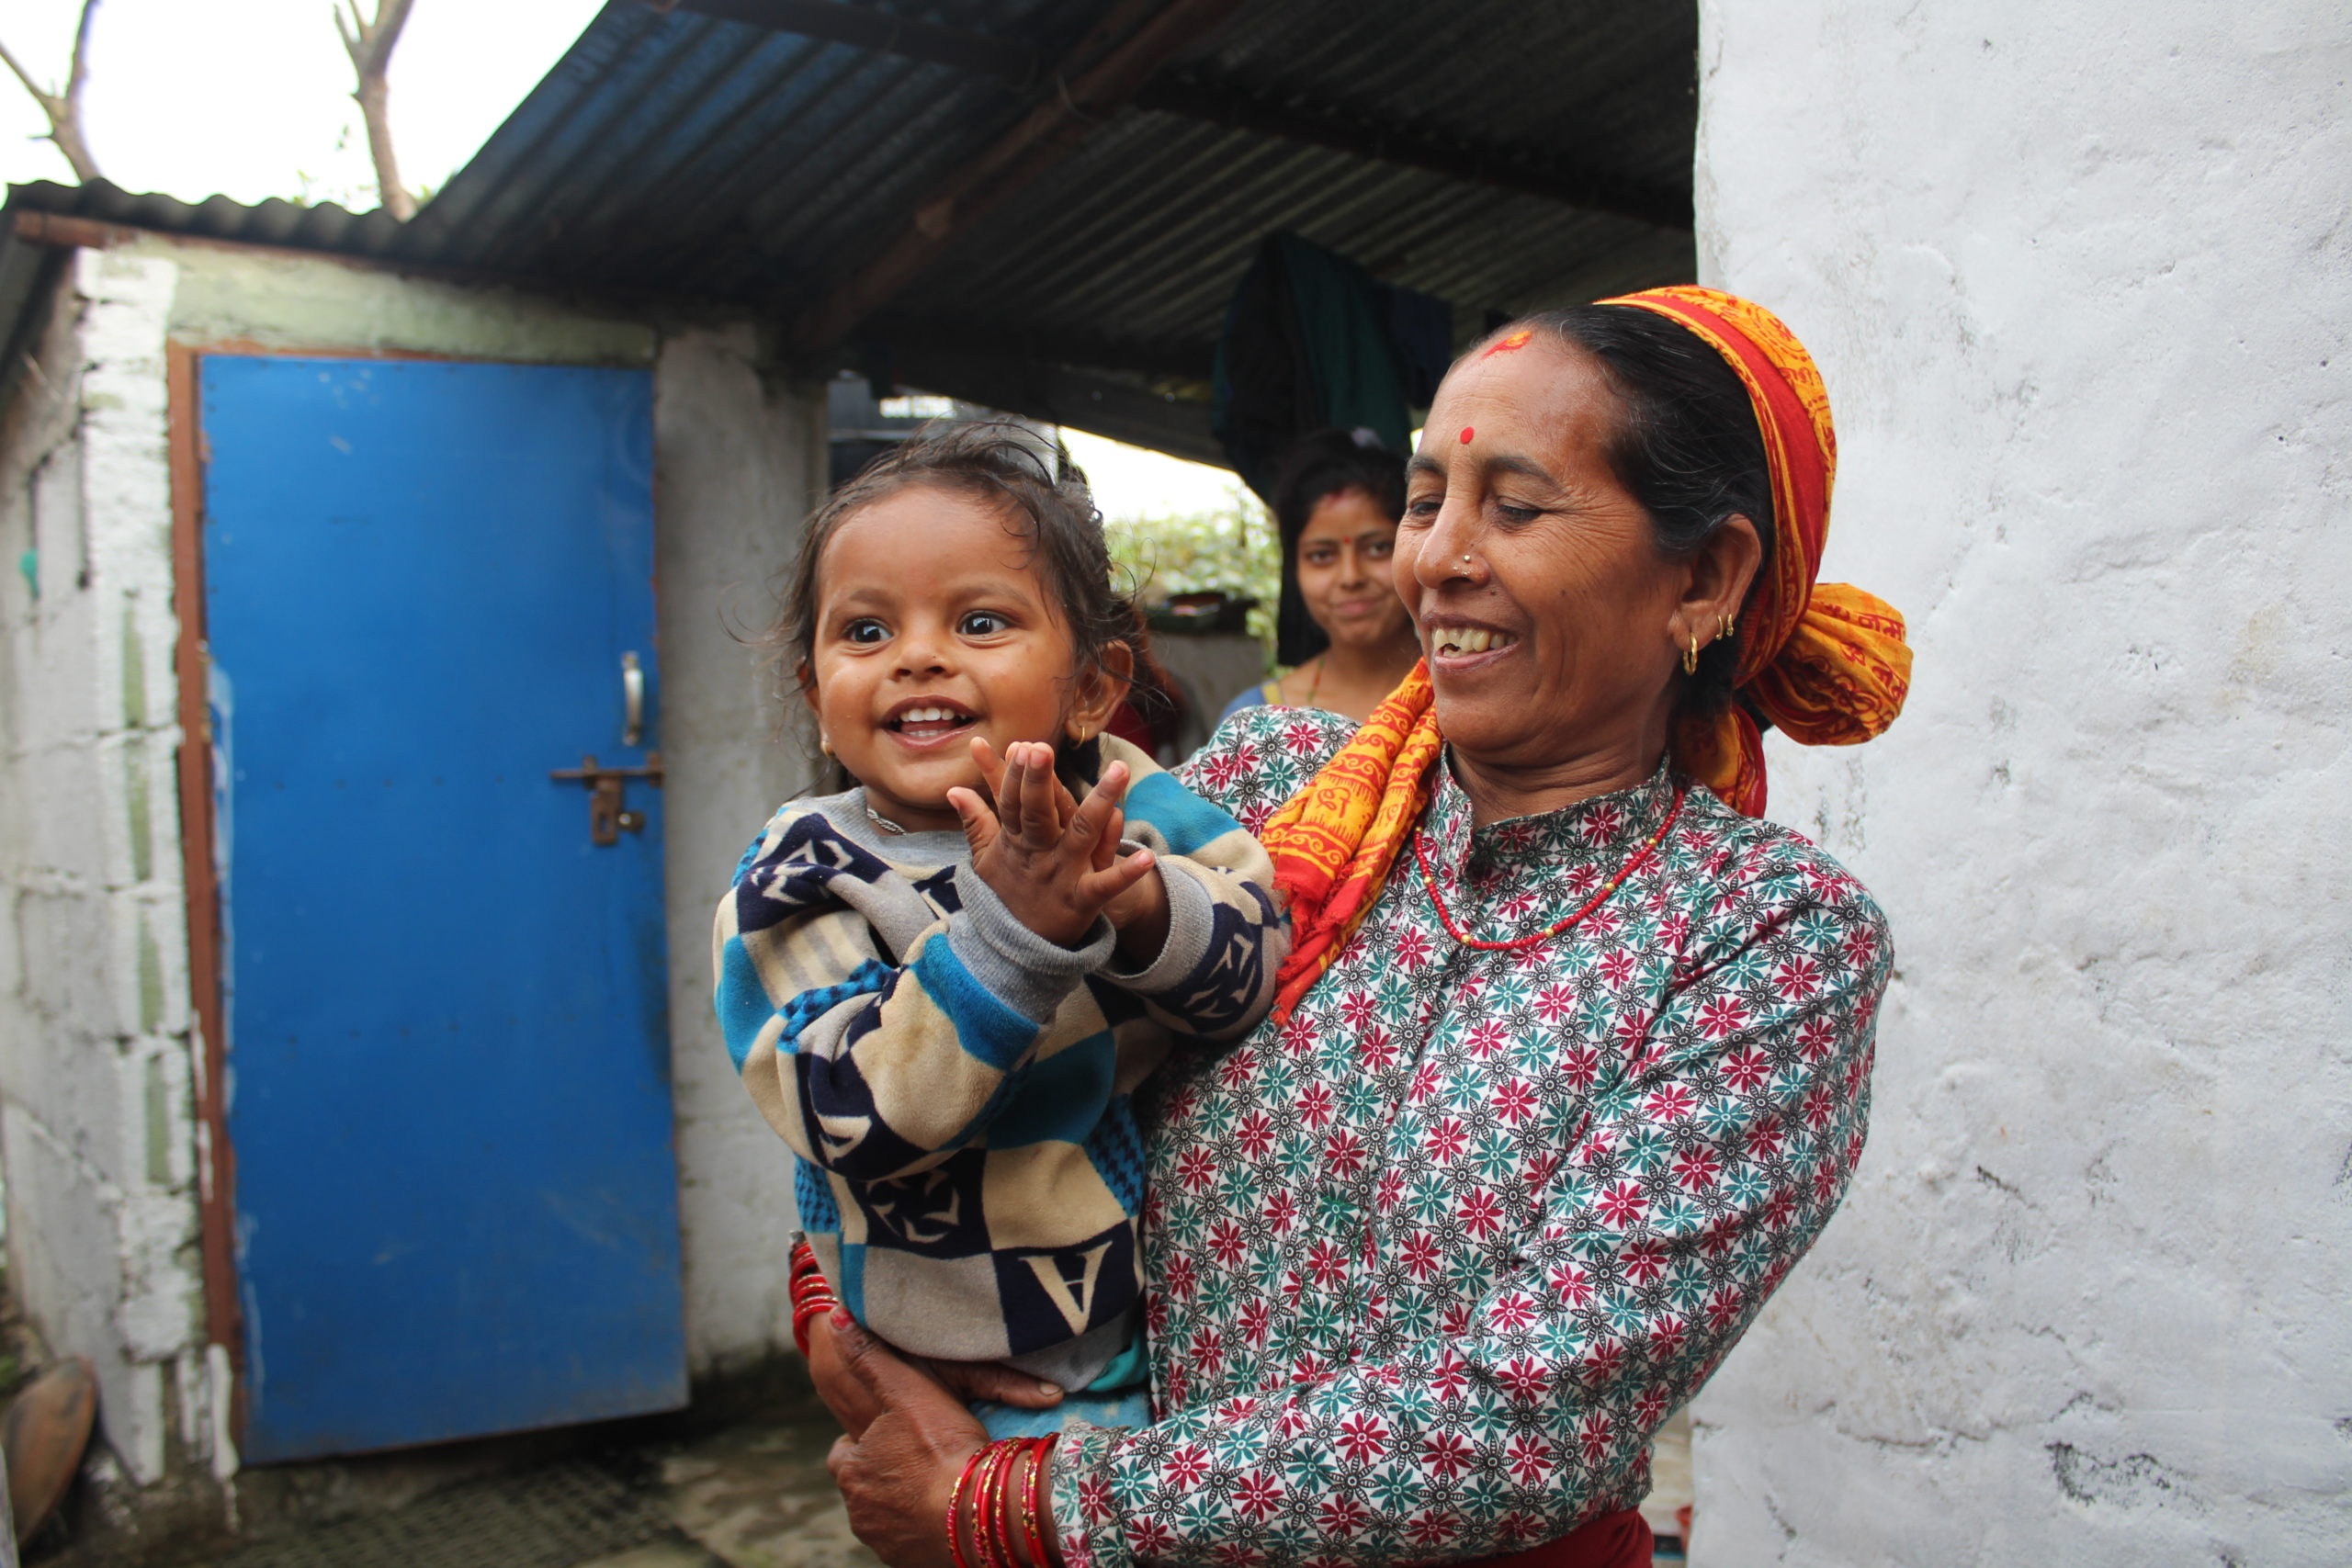 a woman smiling and holding a baby. amazing nonprofit photos